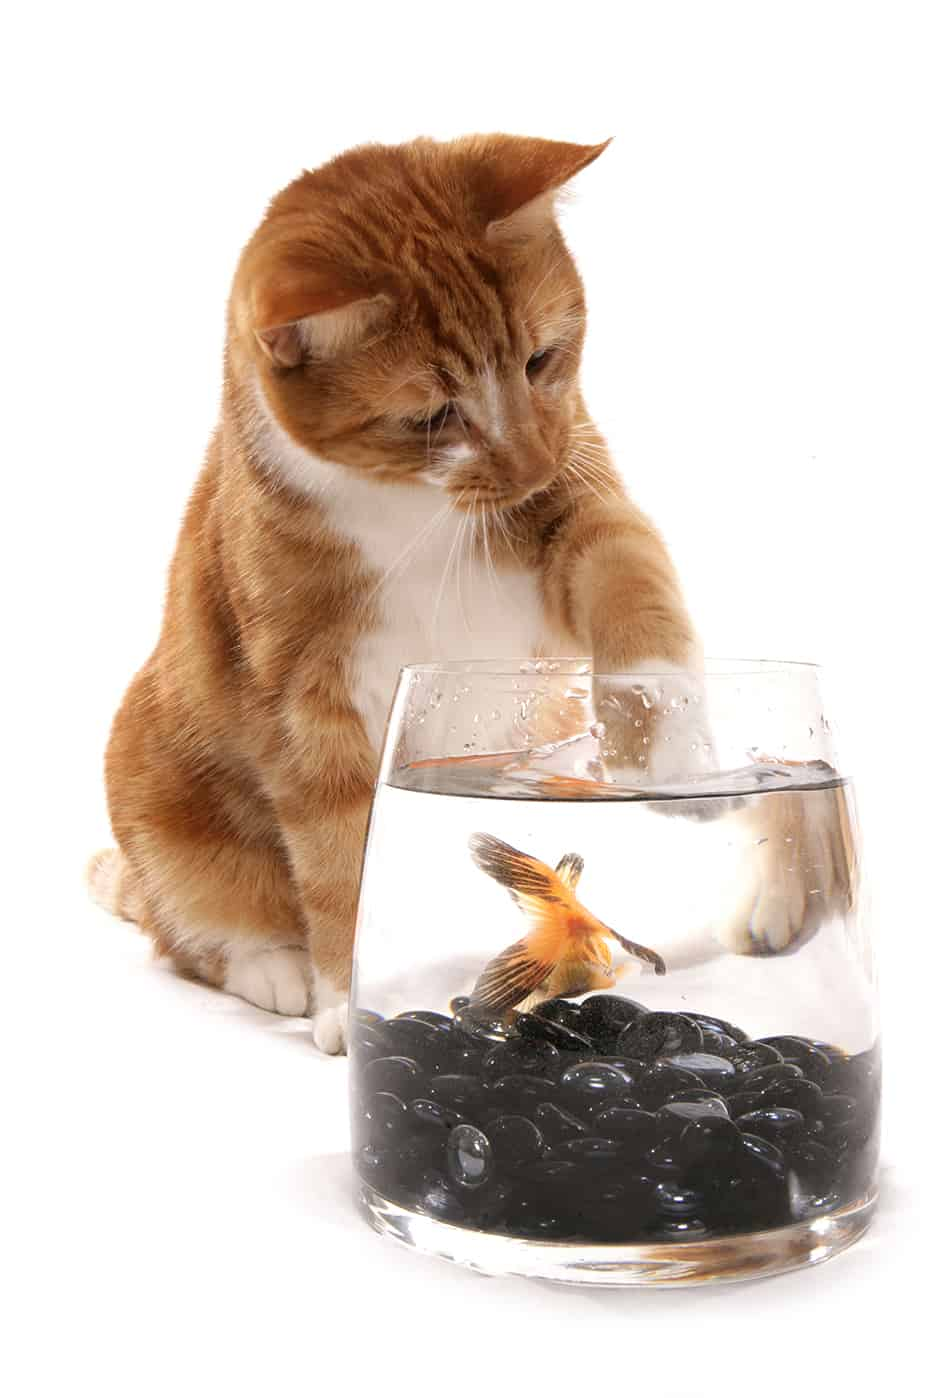 Dream about a cat eating a goldfish